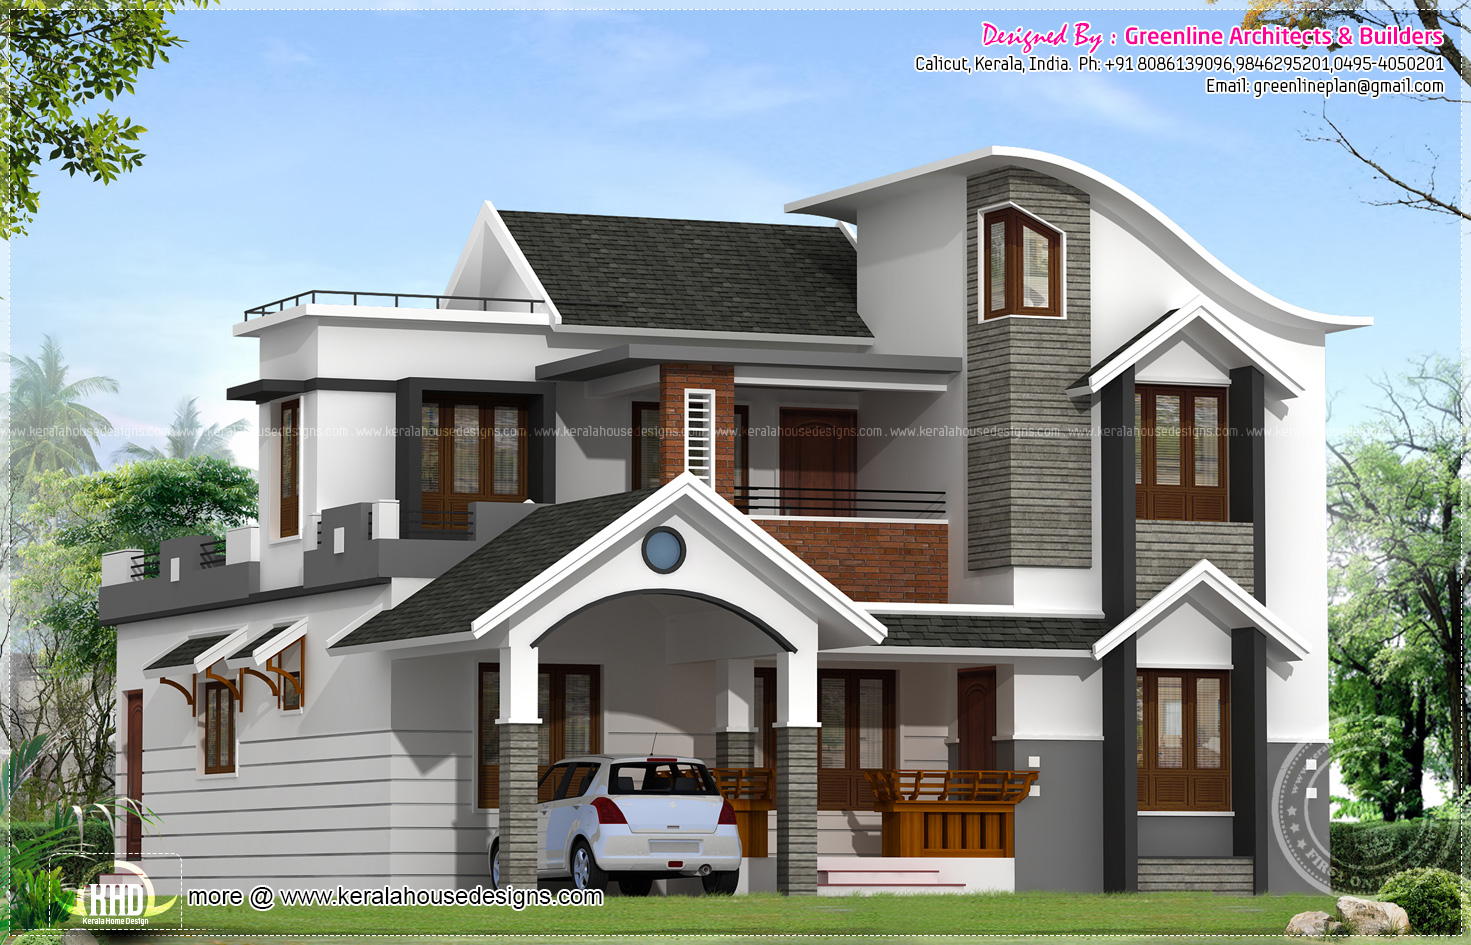 Modern house architecture in kerala kerala home design for Kerala house plan images